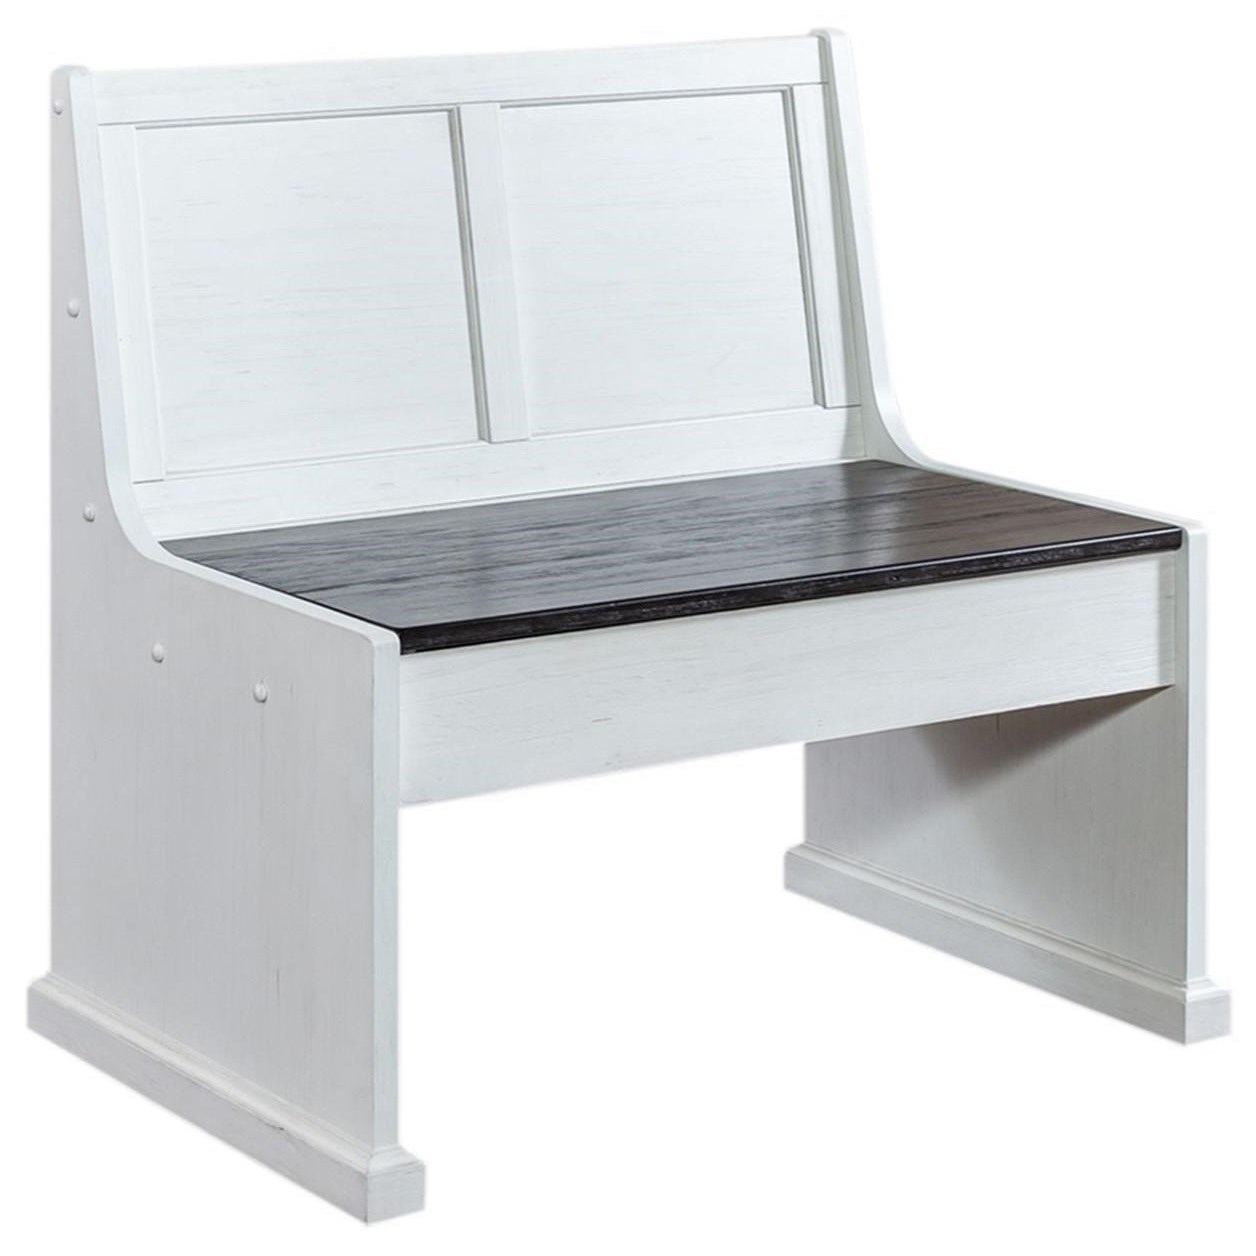 Allyson Park 37 Inch Nook Bench by Liberty Furniture at Home Collections Furniture